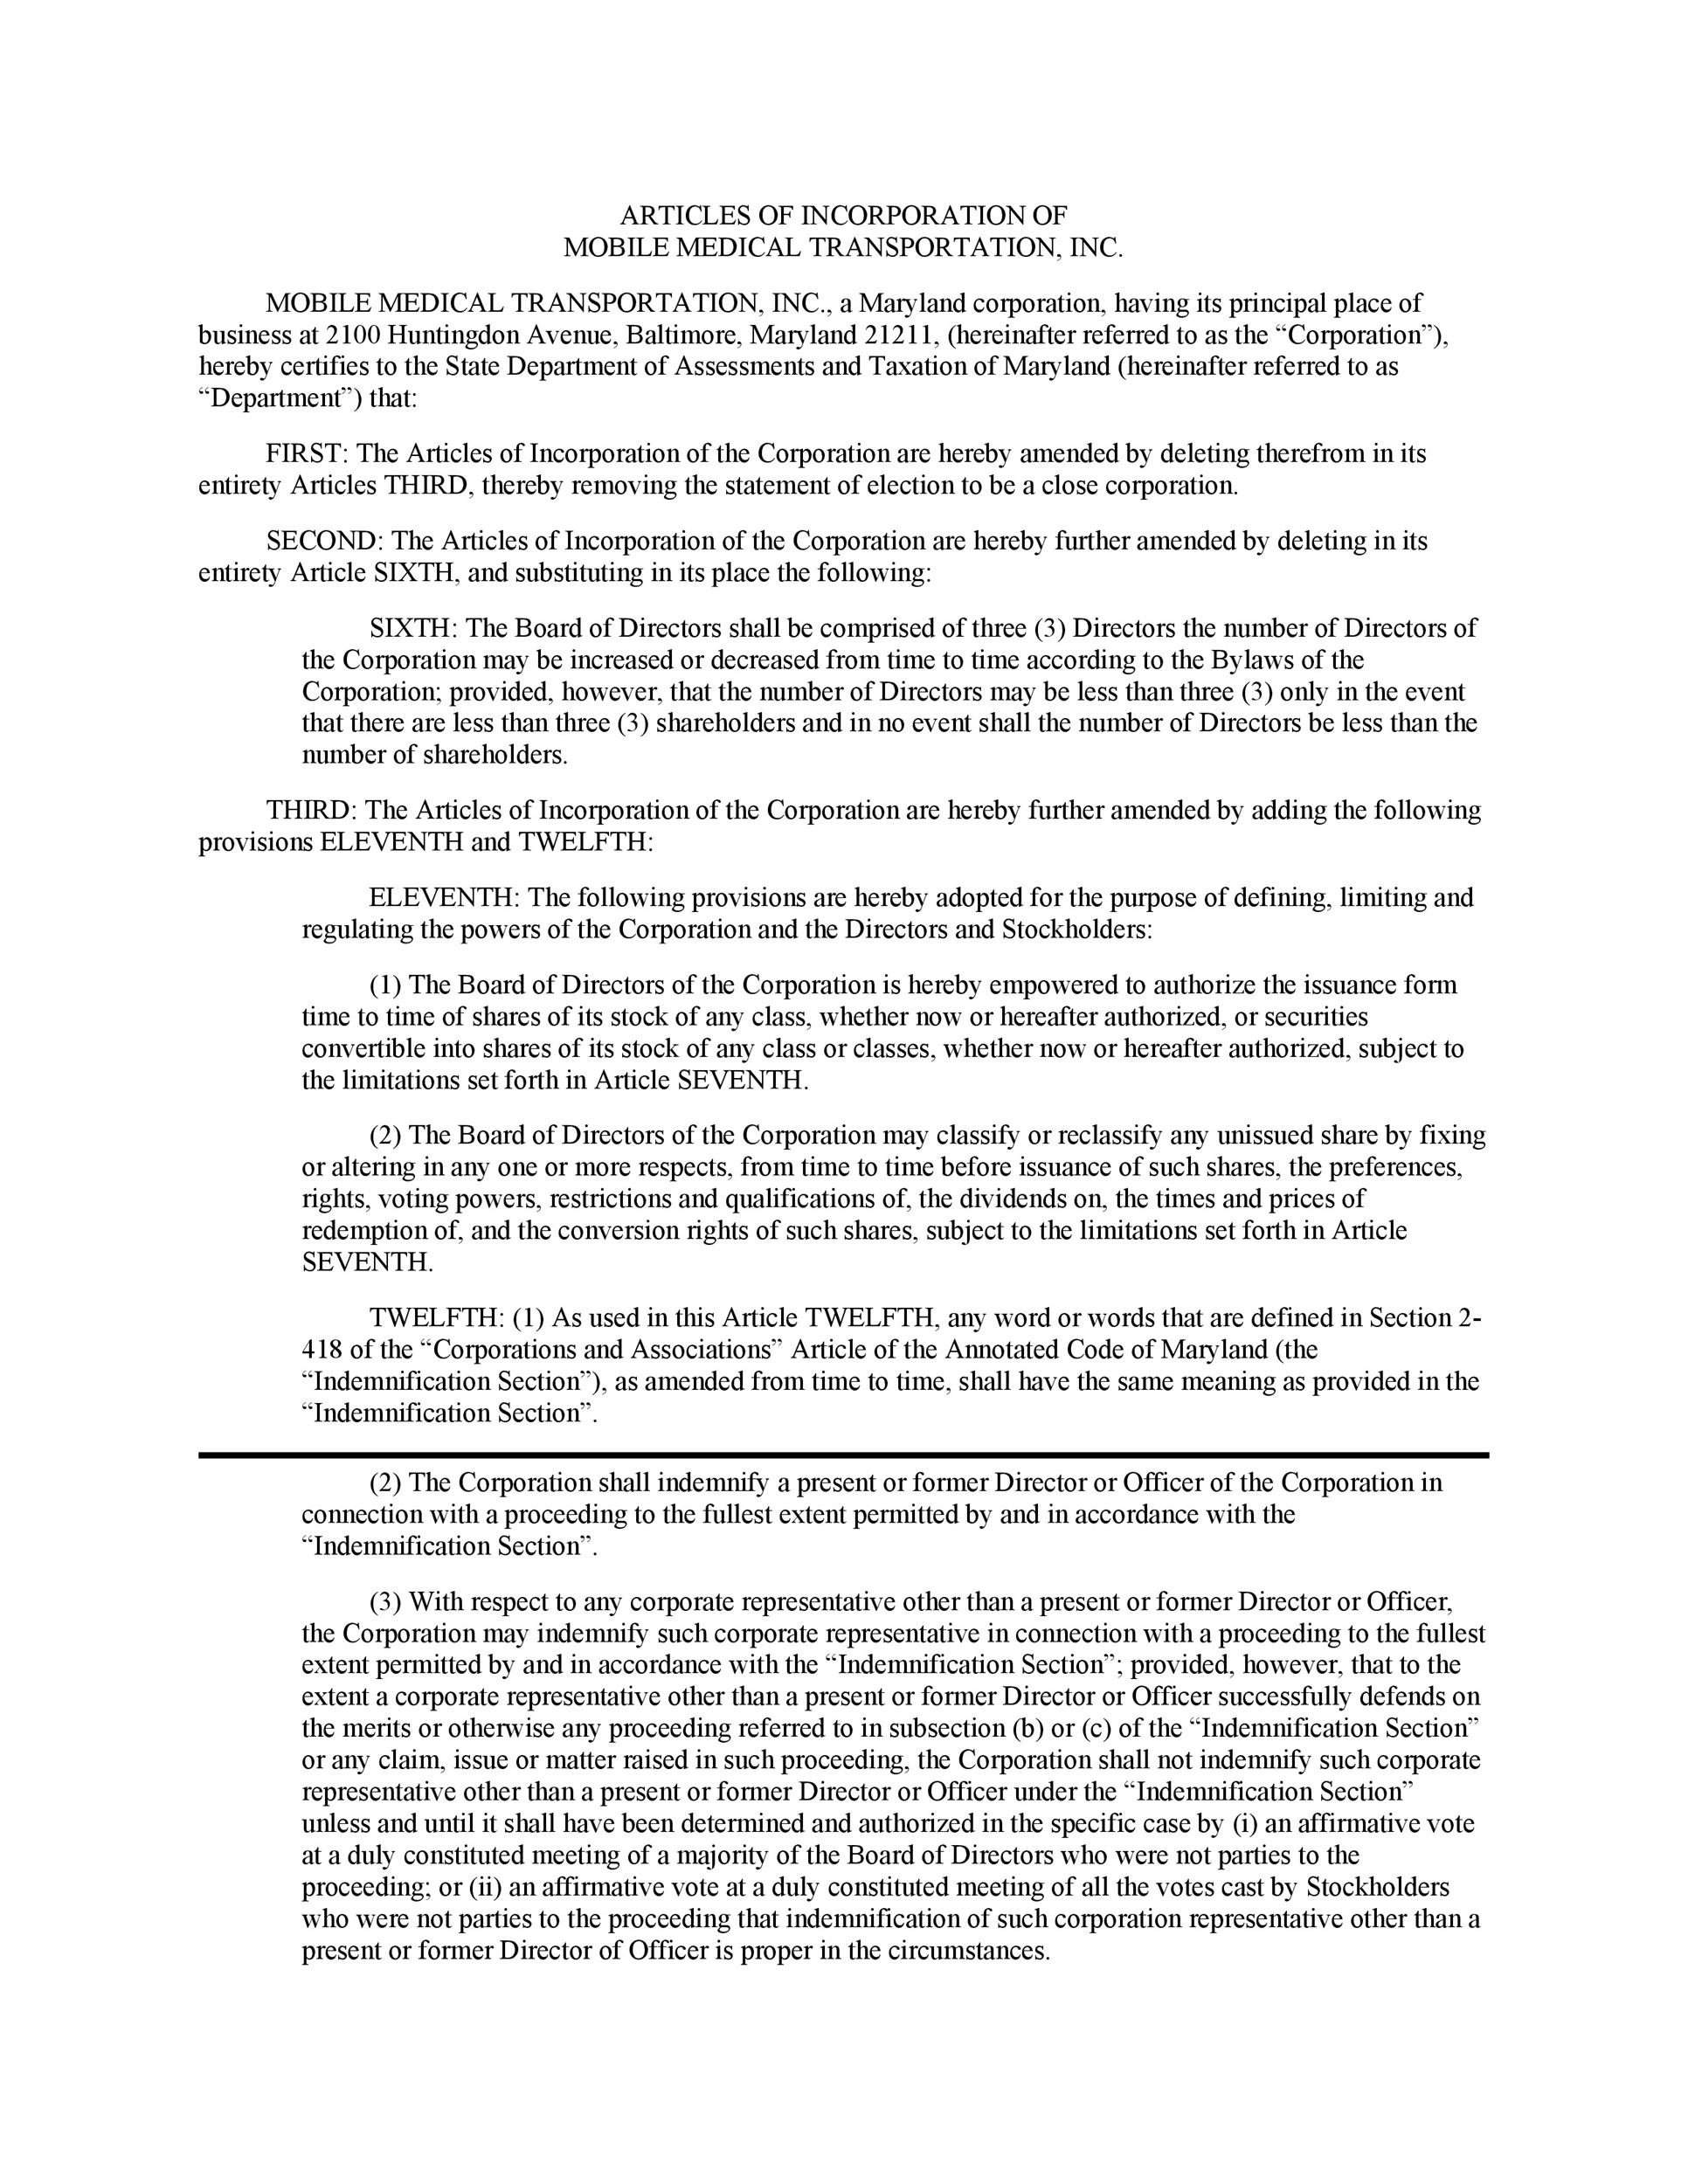 Free articles of incorporation template 15